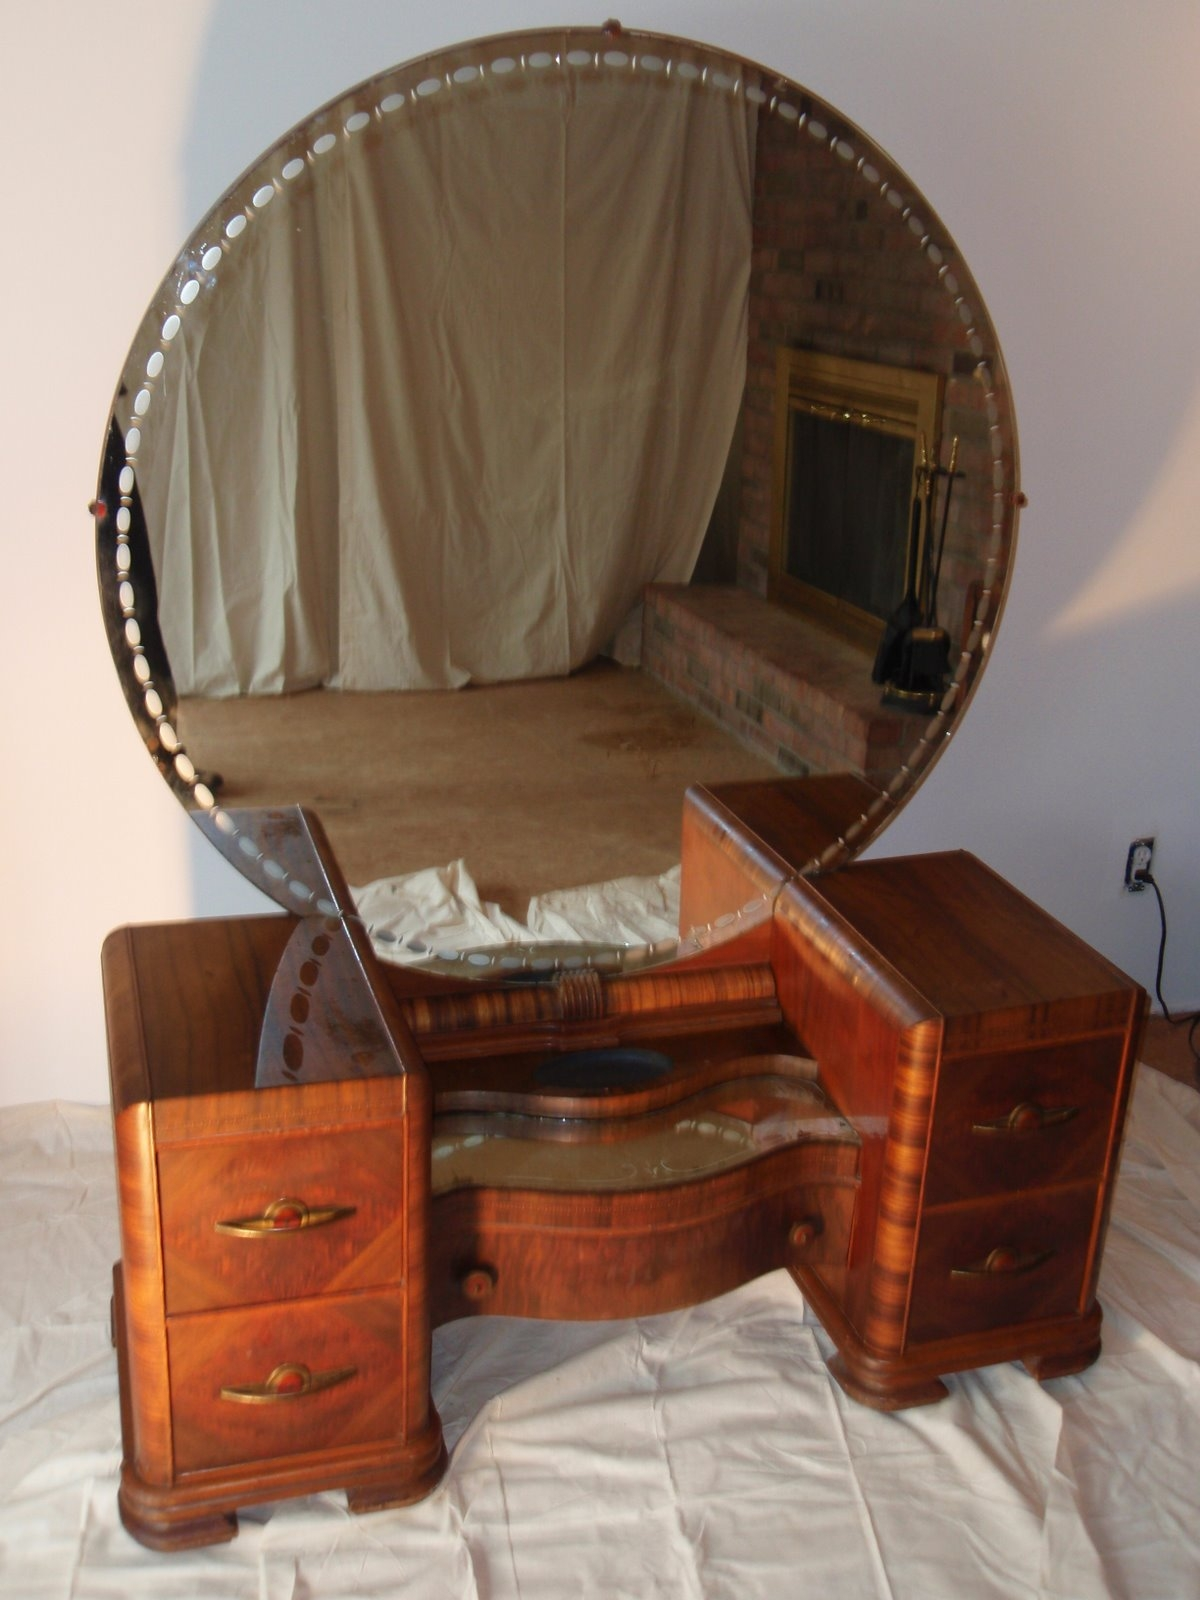 15 Art Deco Mirrored Dressing Table Mirror Ideas